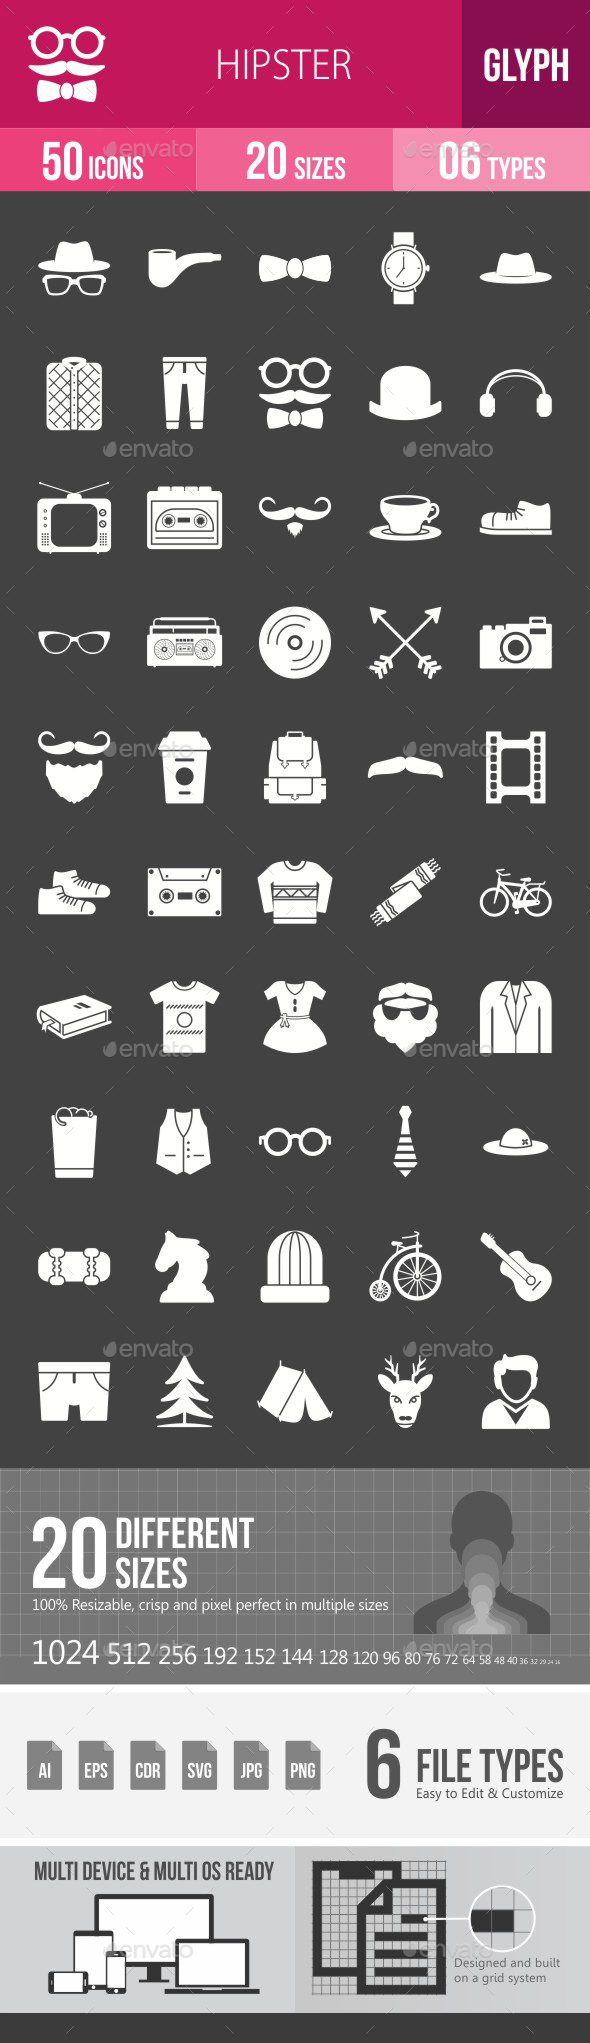 Hipster Glyph Inverted Icons - Icons